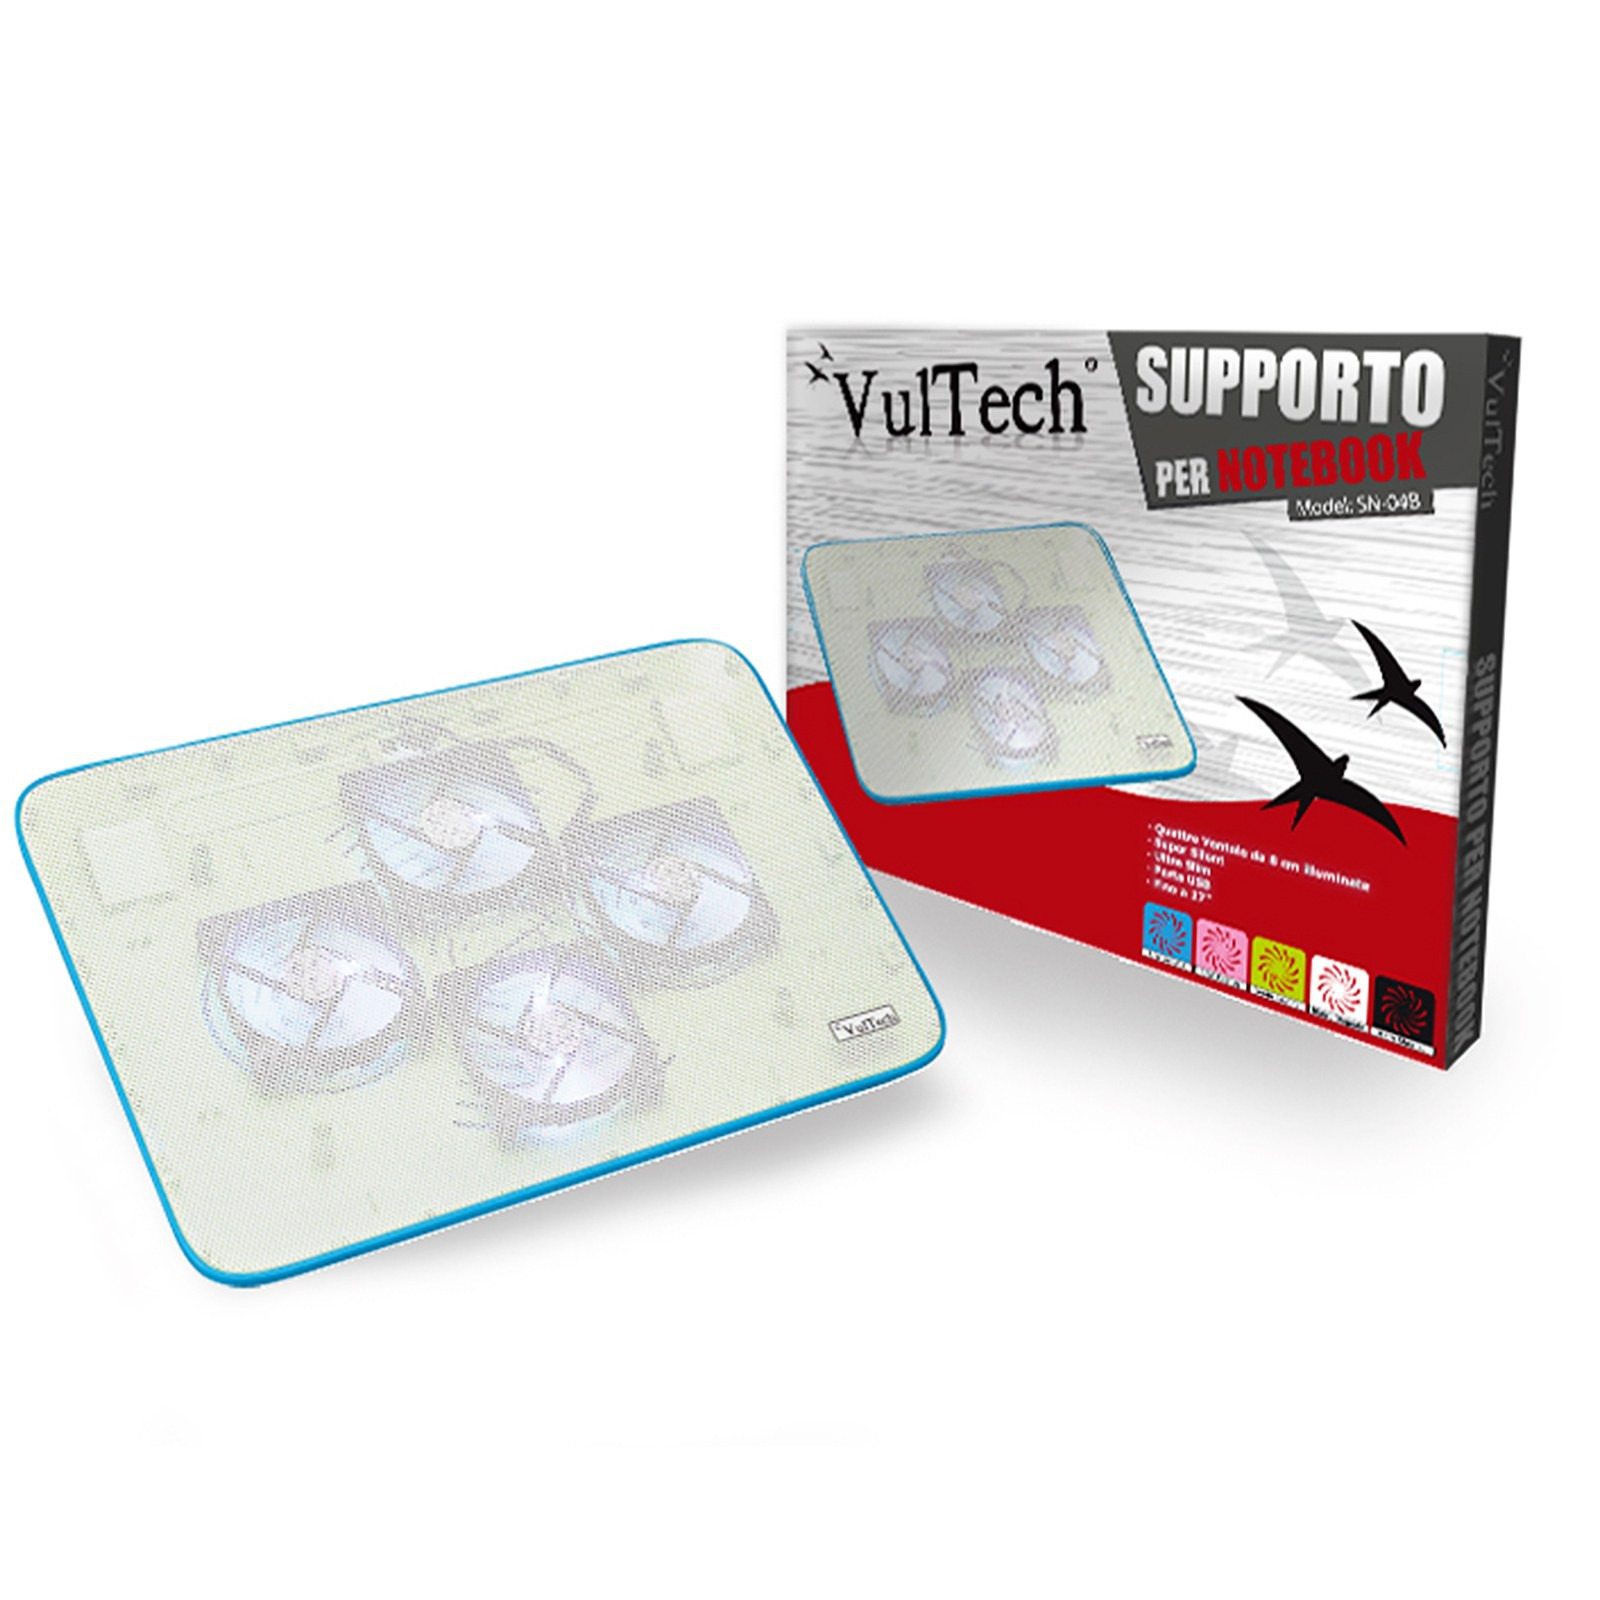 "SUPPORTO PER NOTEBOOK VENTOLA VULTECH PC PORTATILE RAFFREDDAMENTO 15,6"" BLU NEW"